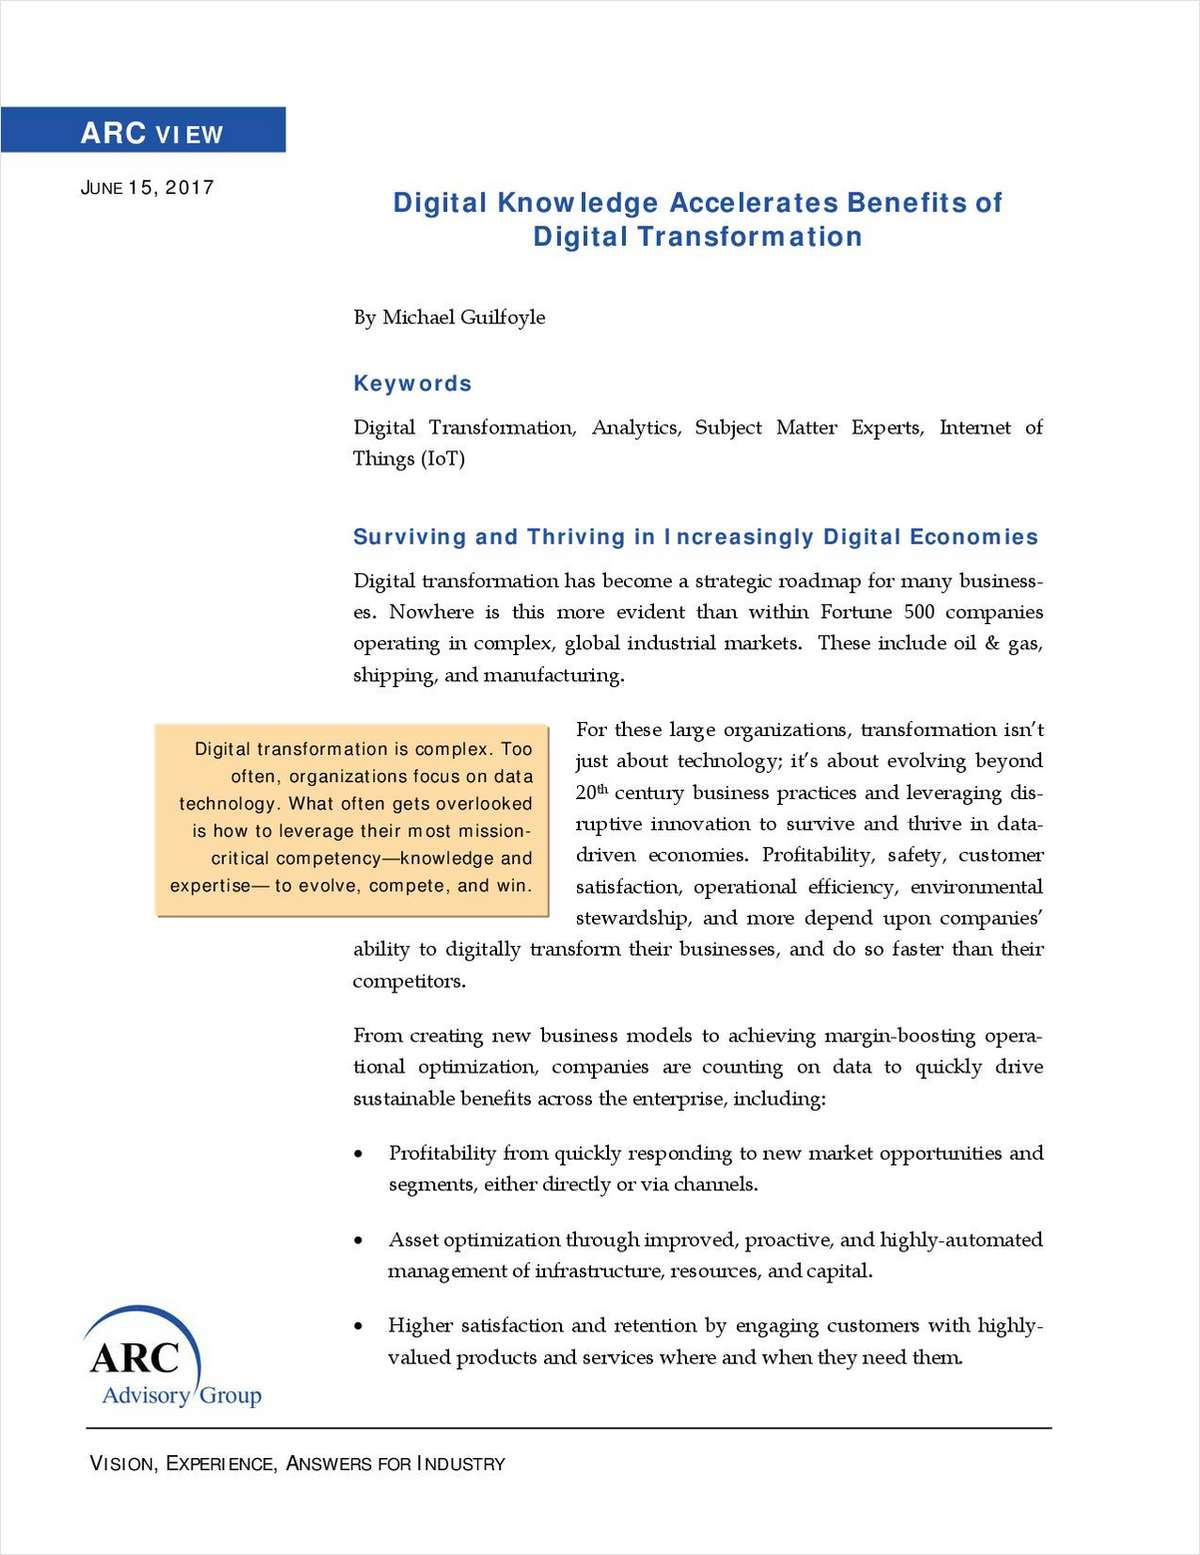 ARC Advisory Group: Digital Knowledge Accelerates Benefits of Digital Transformation